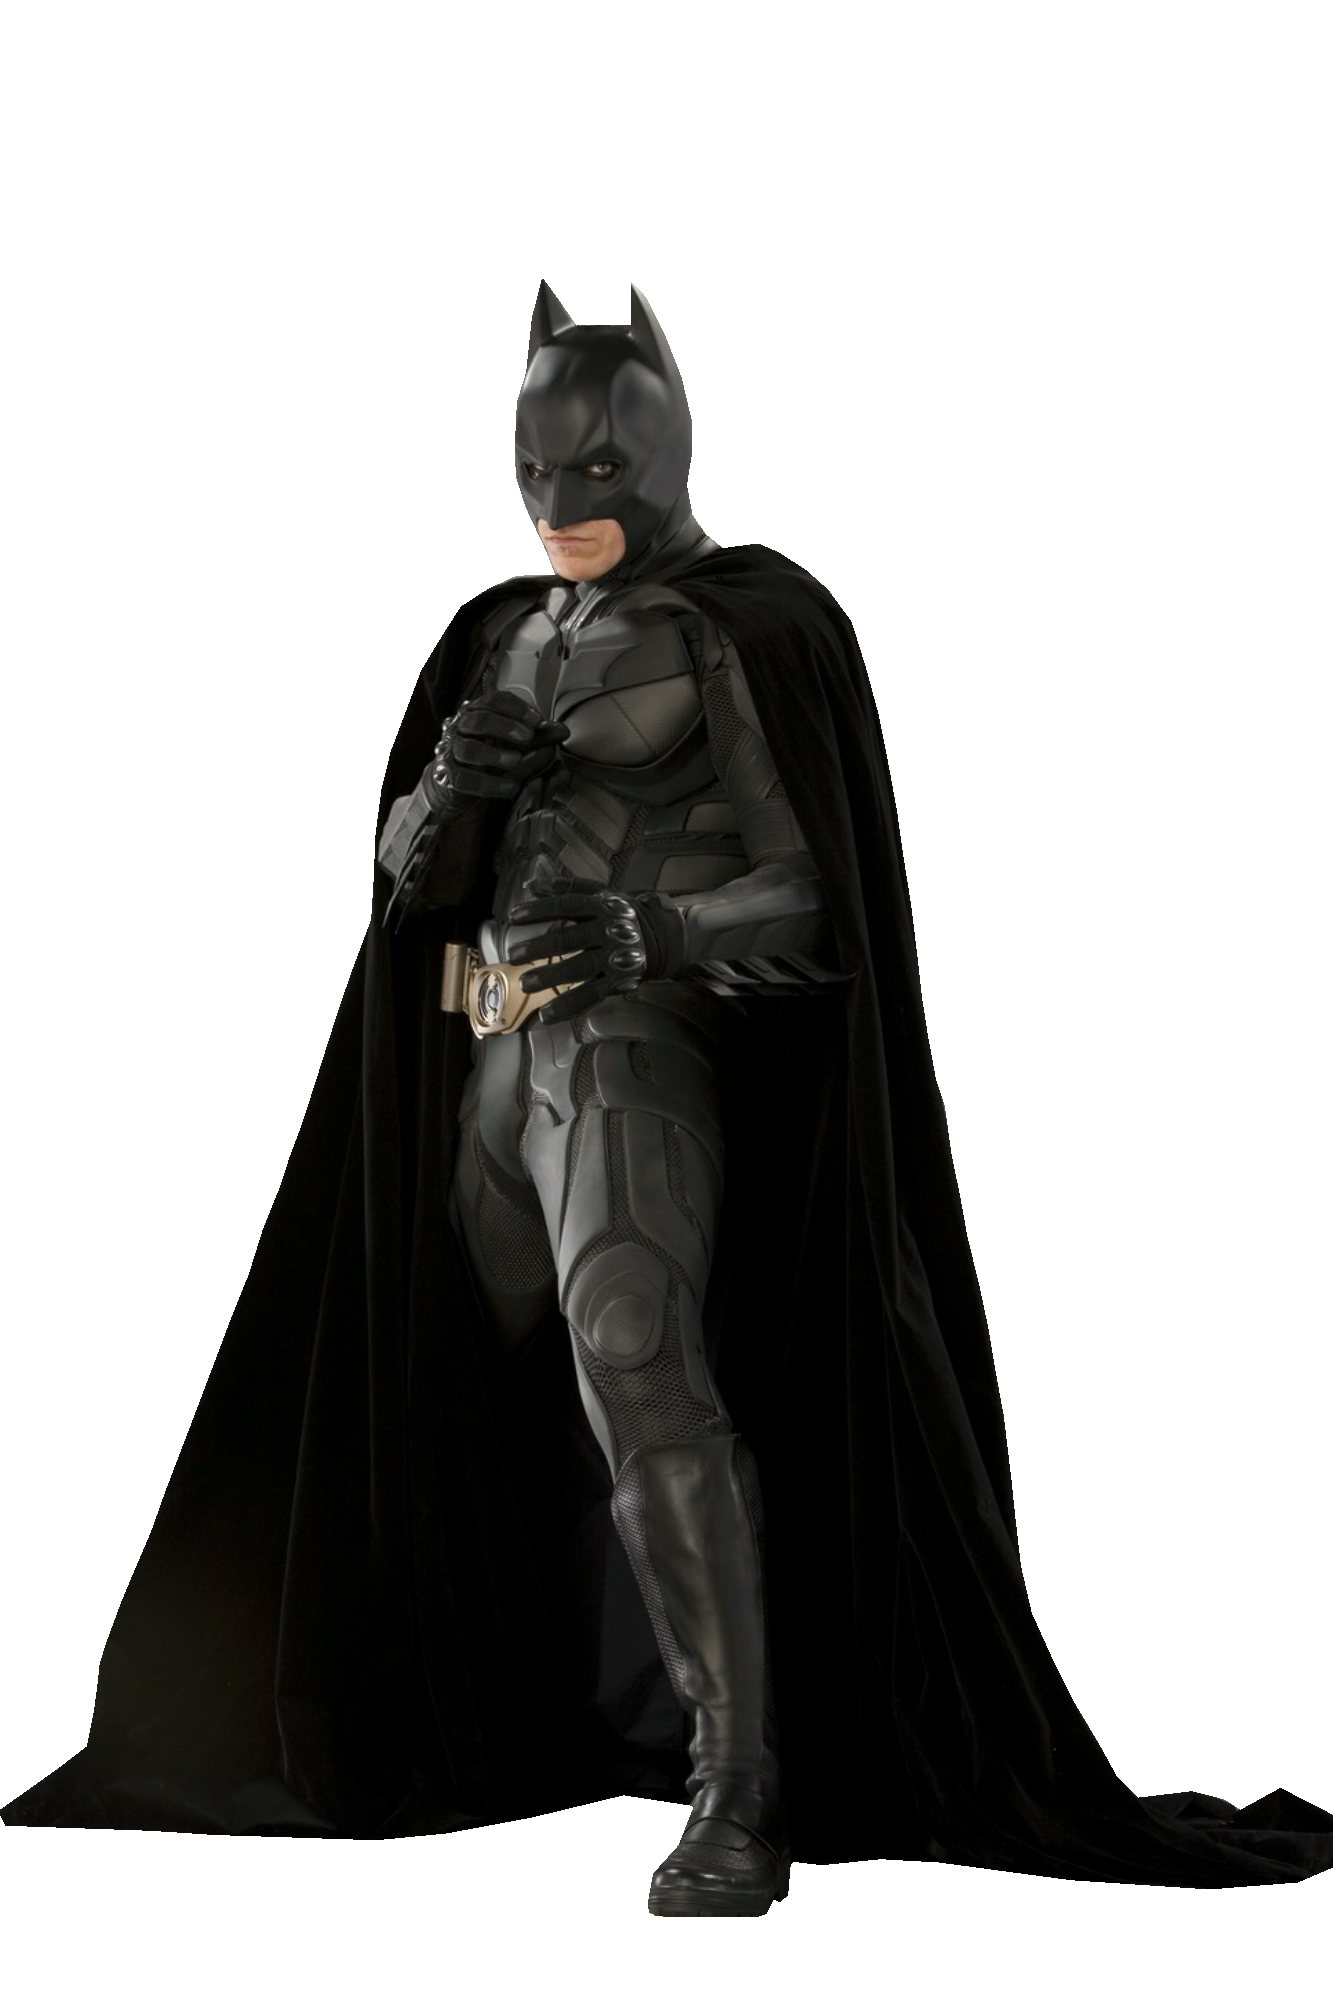 The Dark Knight - Transparent by Asthonx1 on DeviantArt